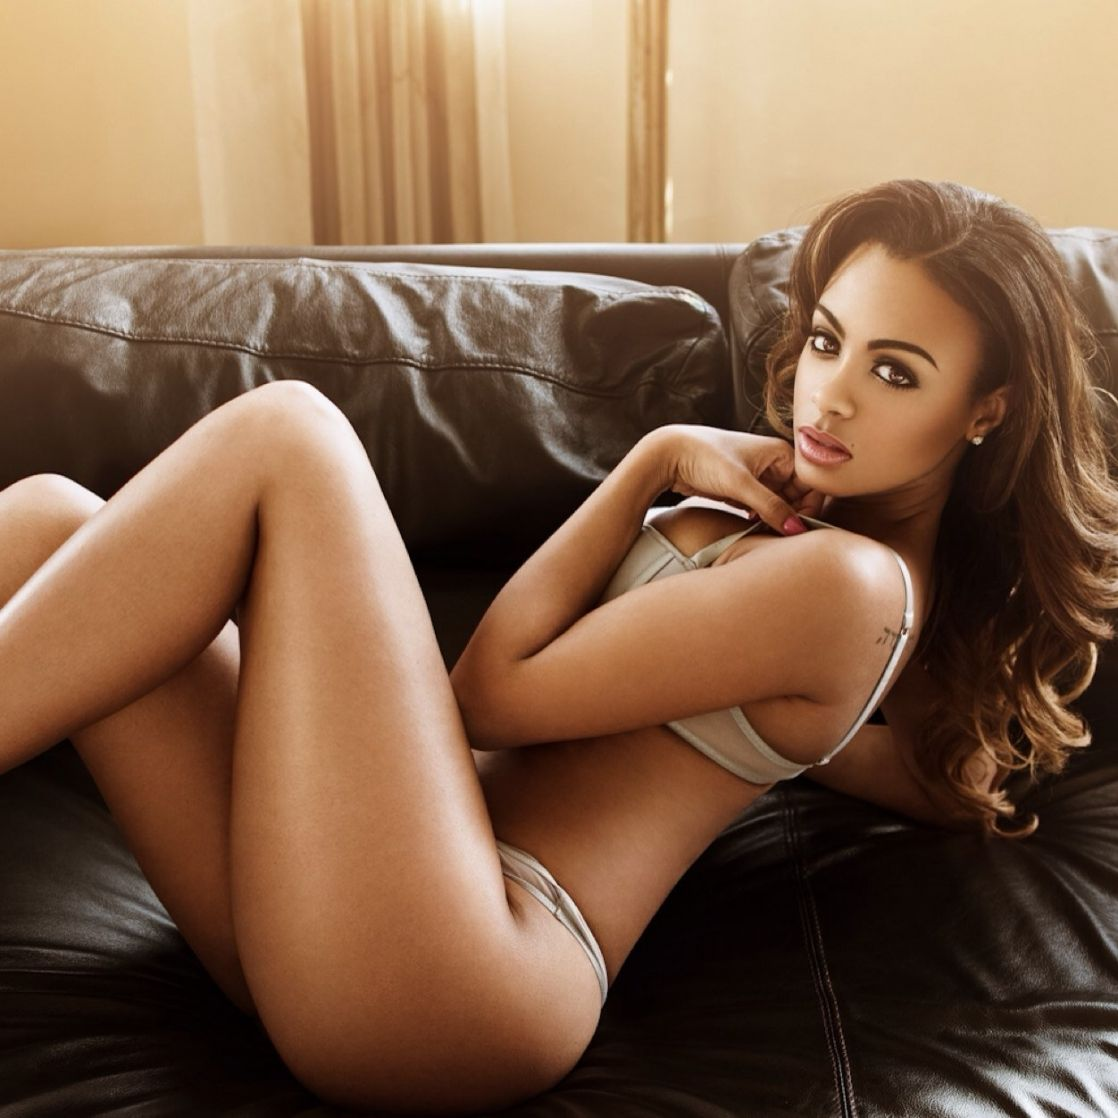 Feet Analicia Chaves nude (88 pics), Sexy